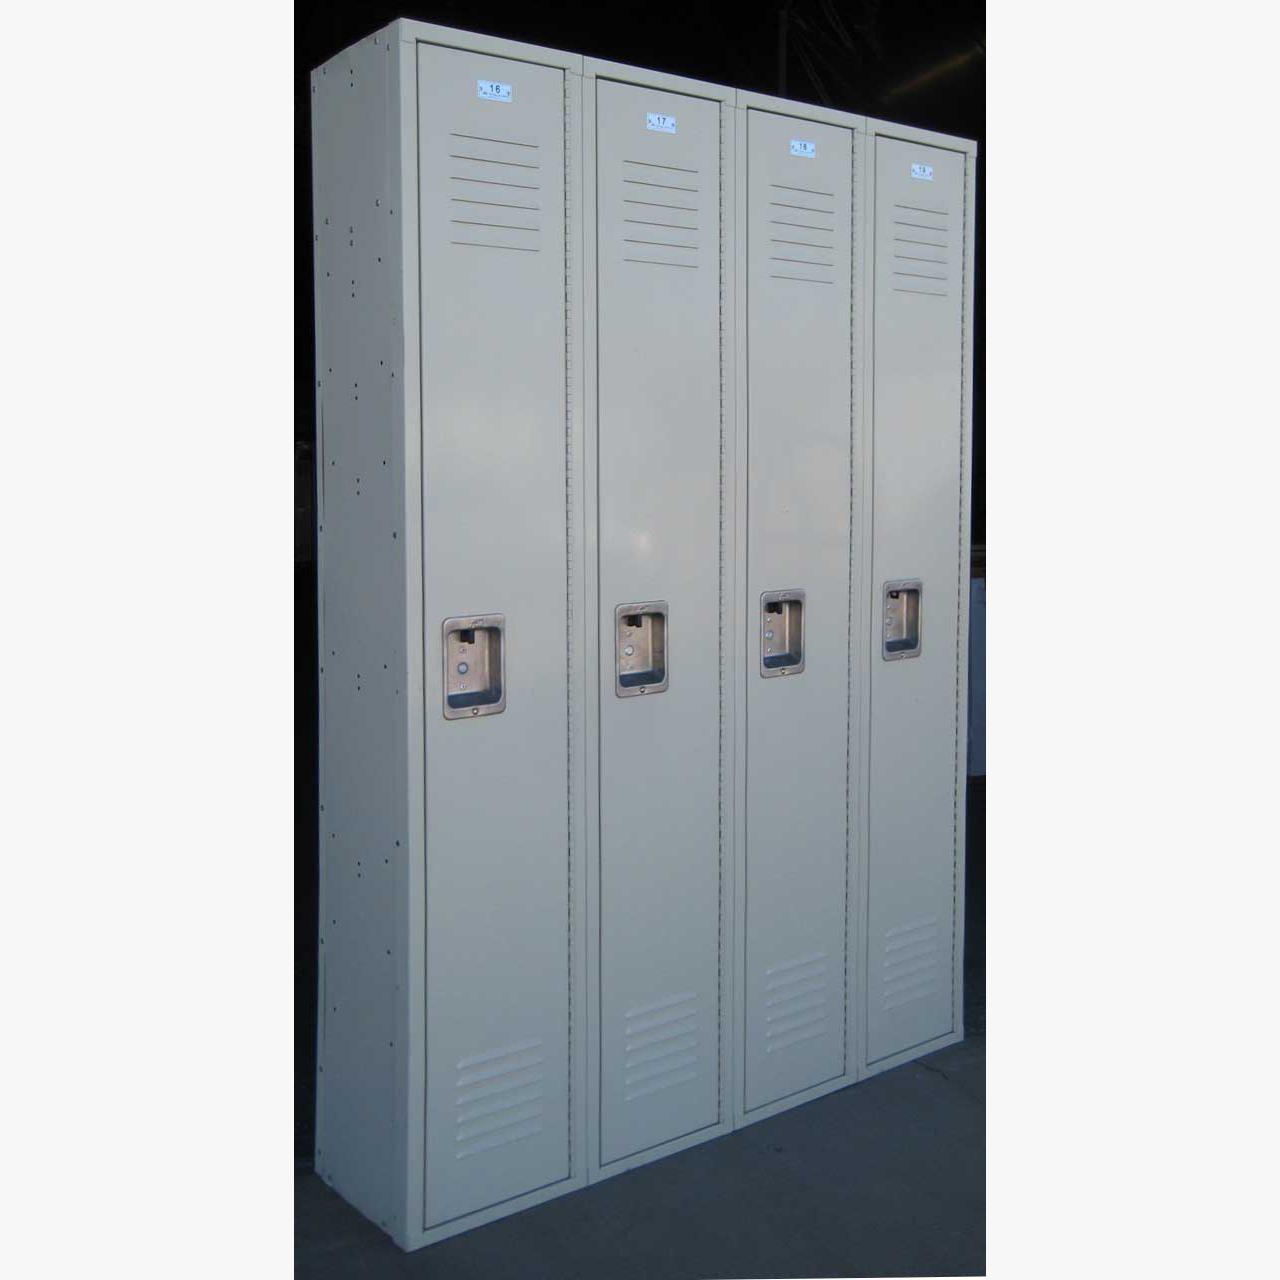 Discounted Steel Lockersimage 4 image 4